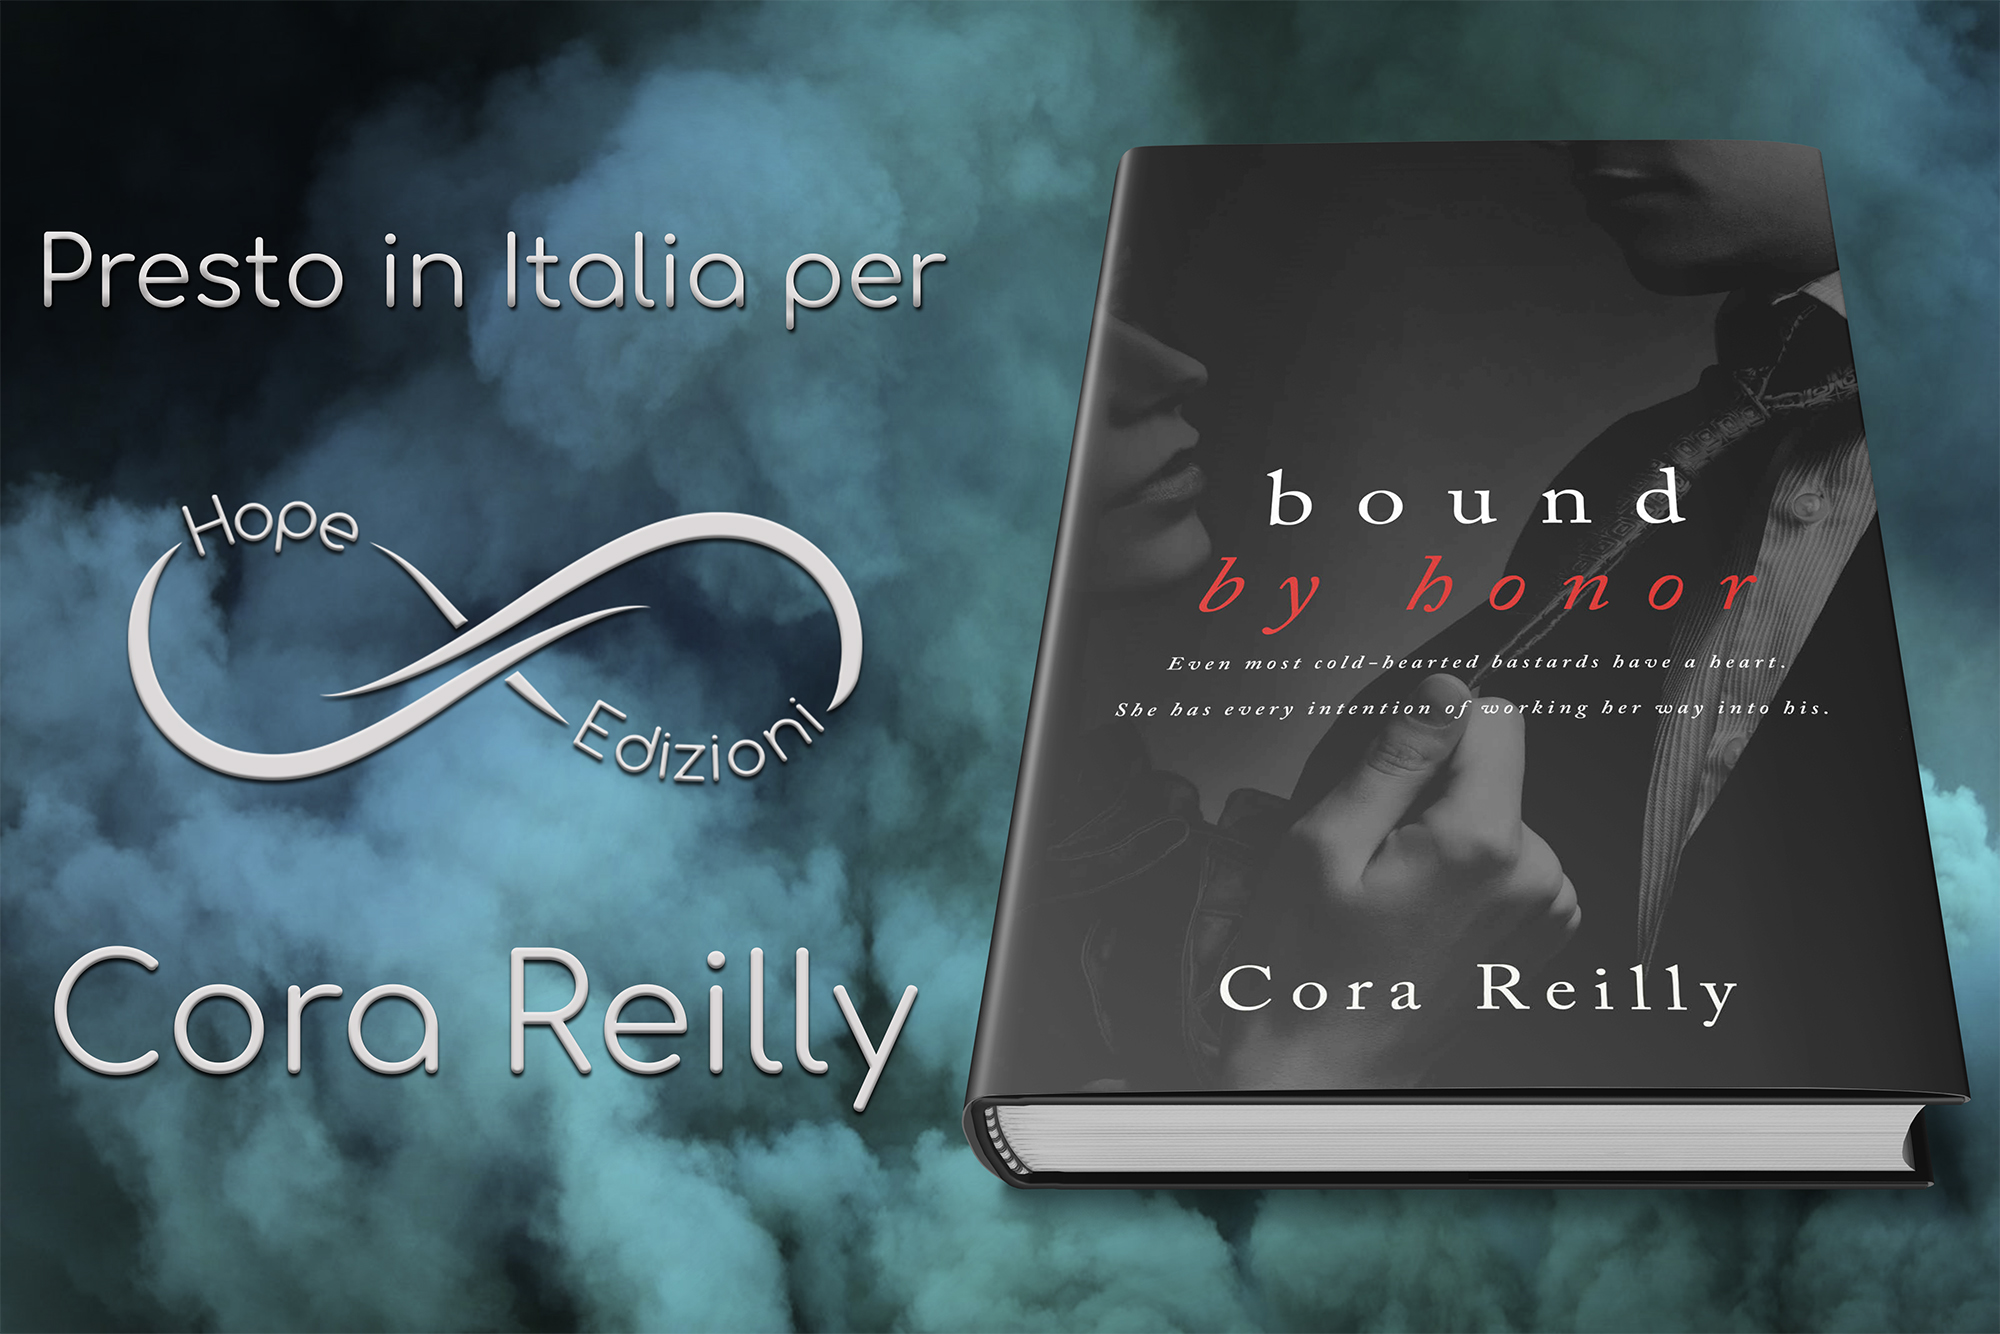 Presto in Italia… Cora Reilly!